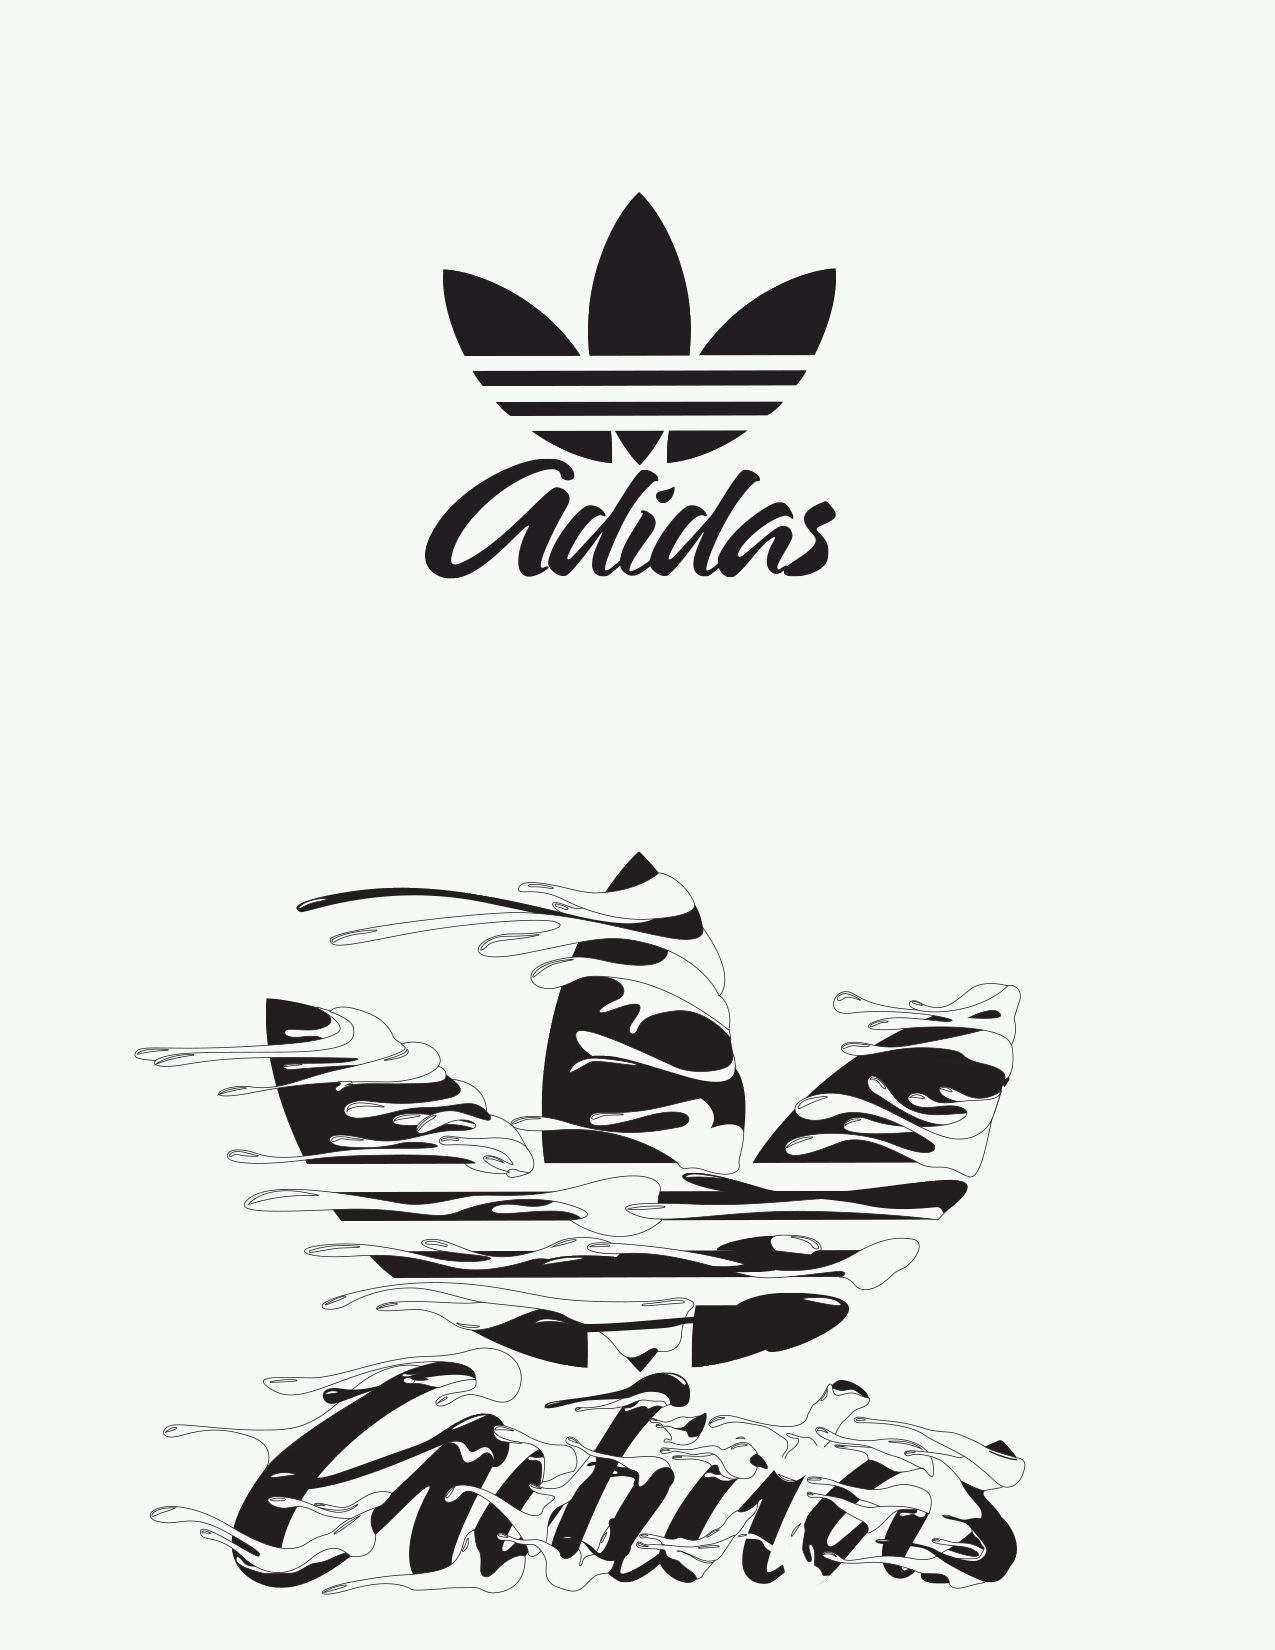 Adidas Originals Typography On Behance Adidas Art Adidas Wallpapers Adidas Logo Wallpapers